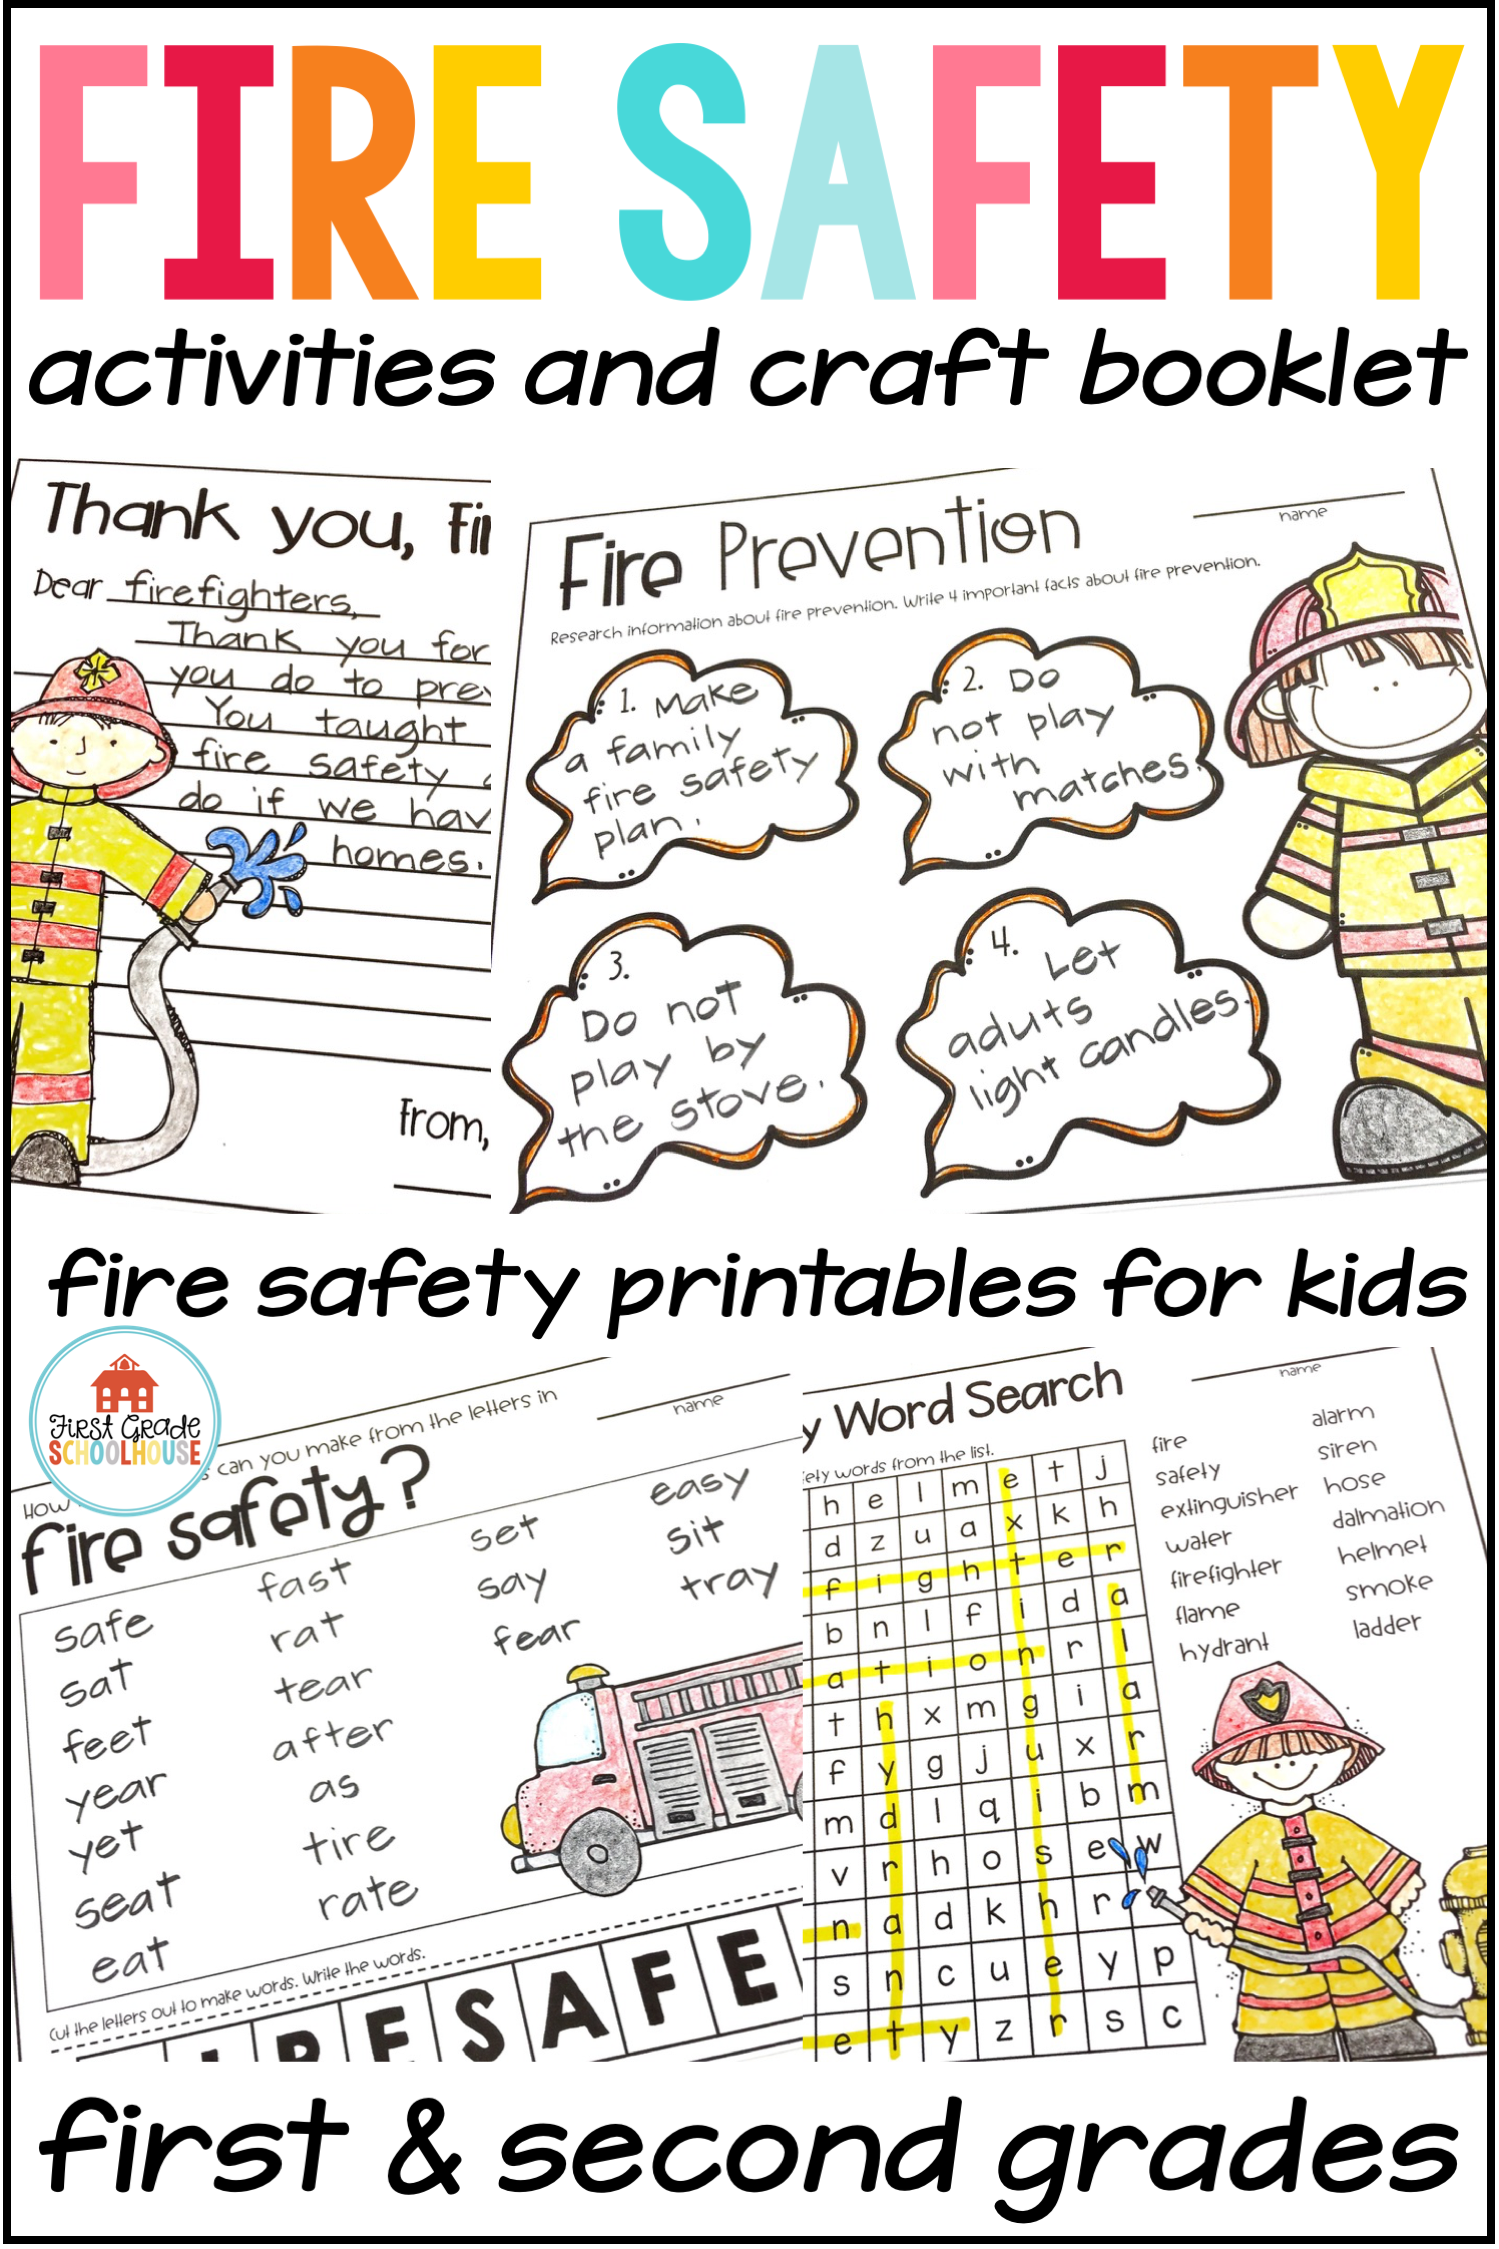 Learning About Fire Safety And Prevention Is Fun With These Activities That Are Perfect For Fire Preven Fire Safety Activities Fire Safety Fire Prevention Week [ 2249 x 1499 Pixel ]